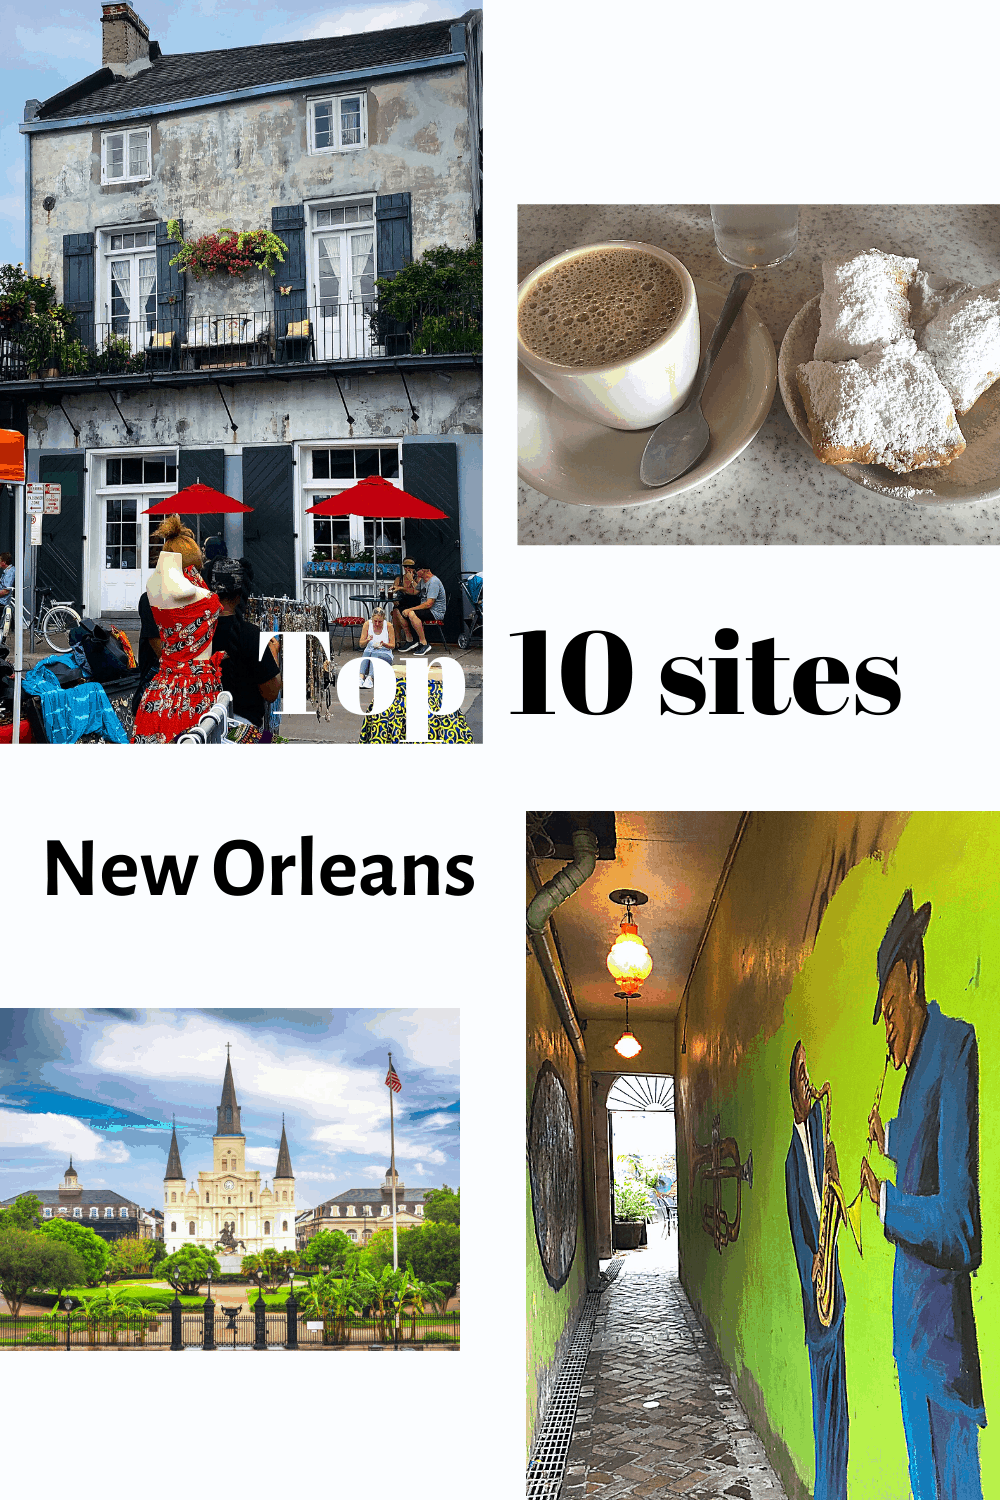 New Orleans travel guide, New Orleans travel tips, New Orleans sites to see, New Orleans, historical sites, New Orleans, solo travel, New Orleans things to do, New Orleans travel, Travel New Orleans things to do, Travel New Orleans French Quarter, Top sites in New Orleans, Sites to see in New Orleans #NewOrleans #Nola #USA #TheTopTenTravel